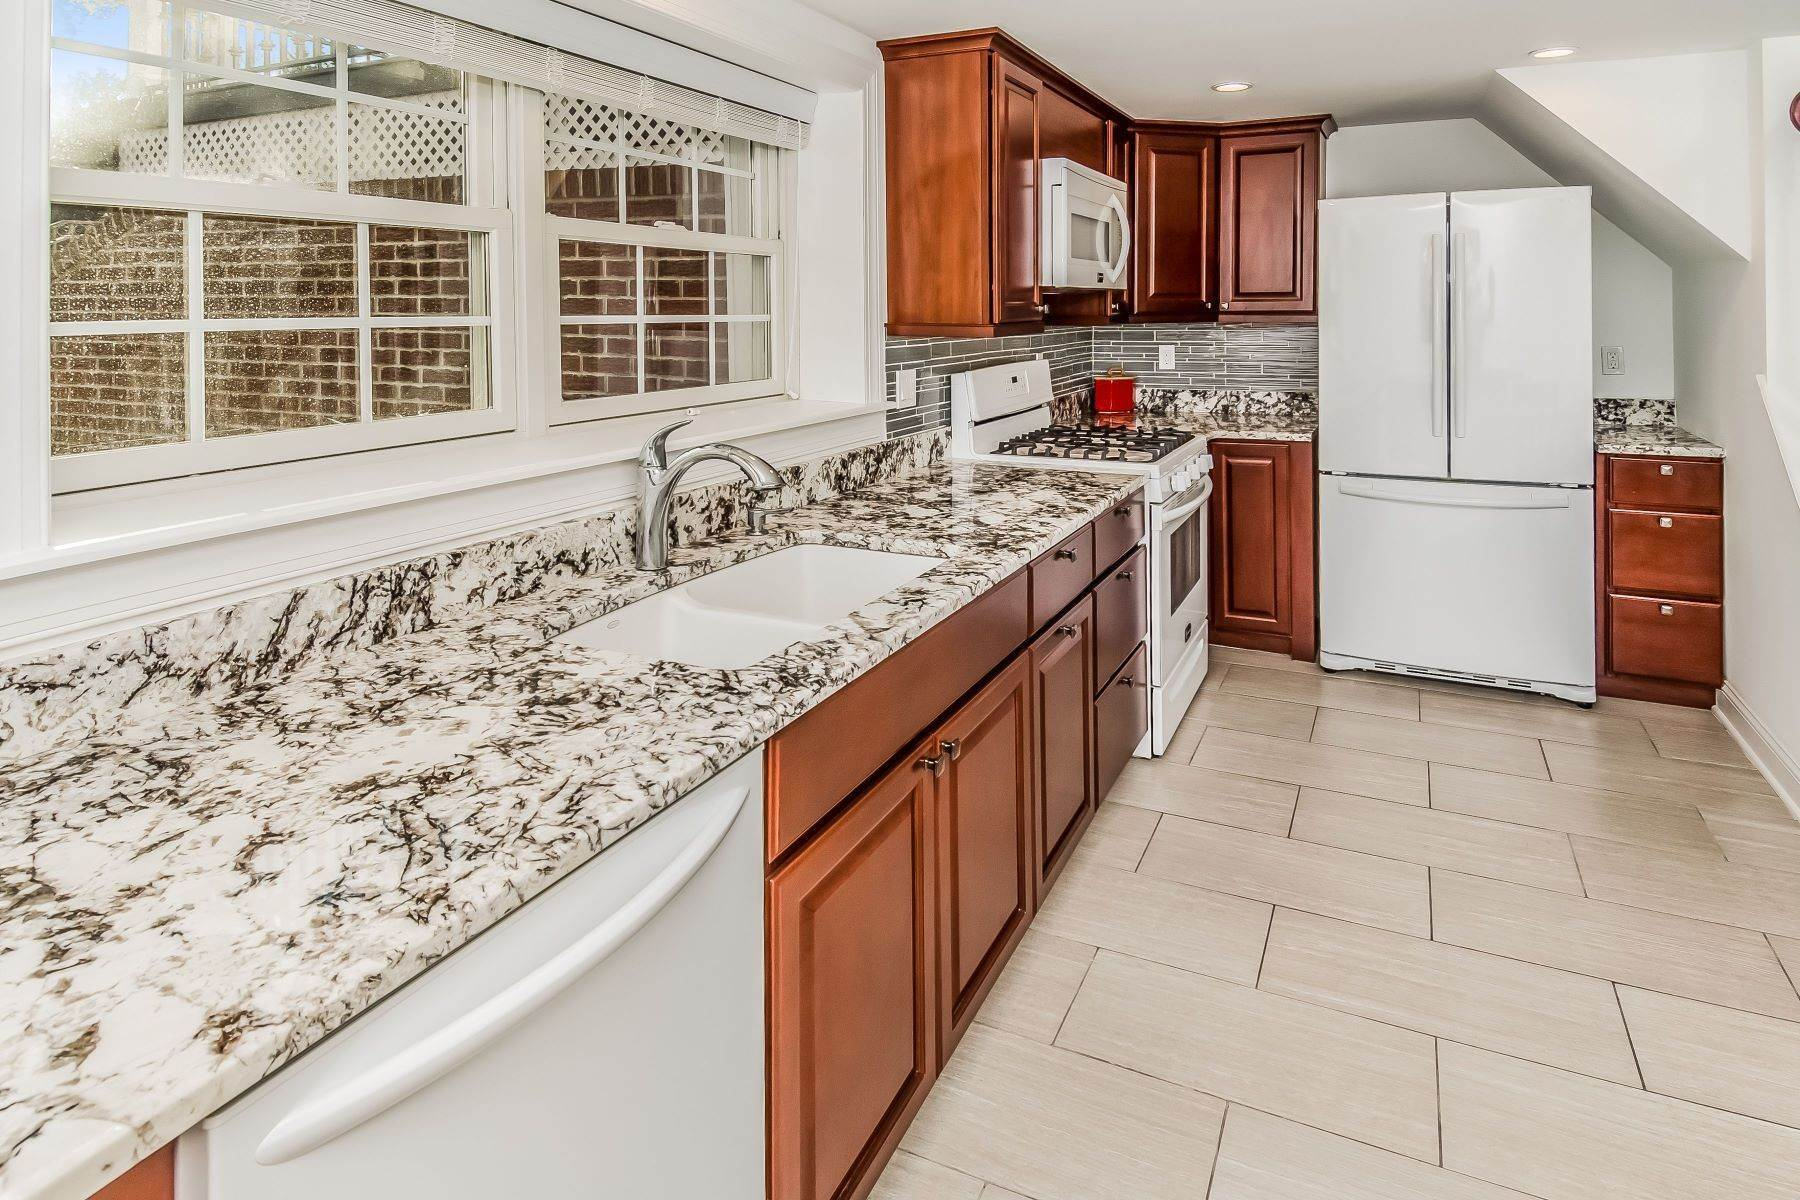 21. Single Family Homes for Sale at Multi-Generational Living At Its Best 427 Belle Mead Griggstown Road, Belle Mead, New Jersey 08502 United States